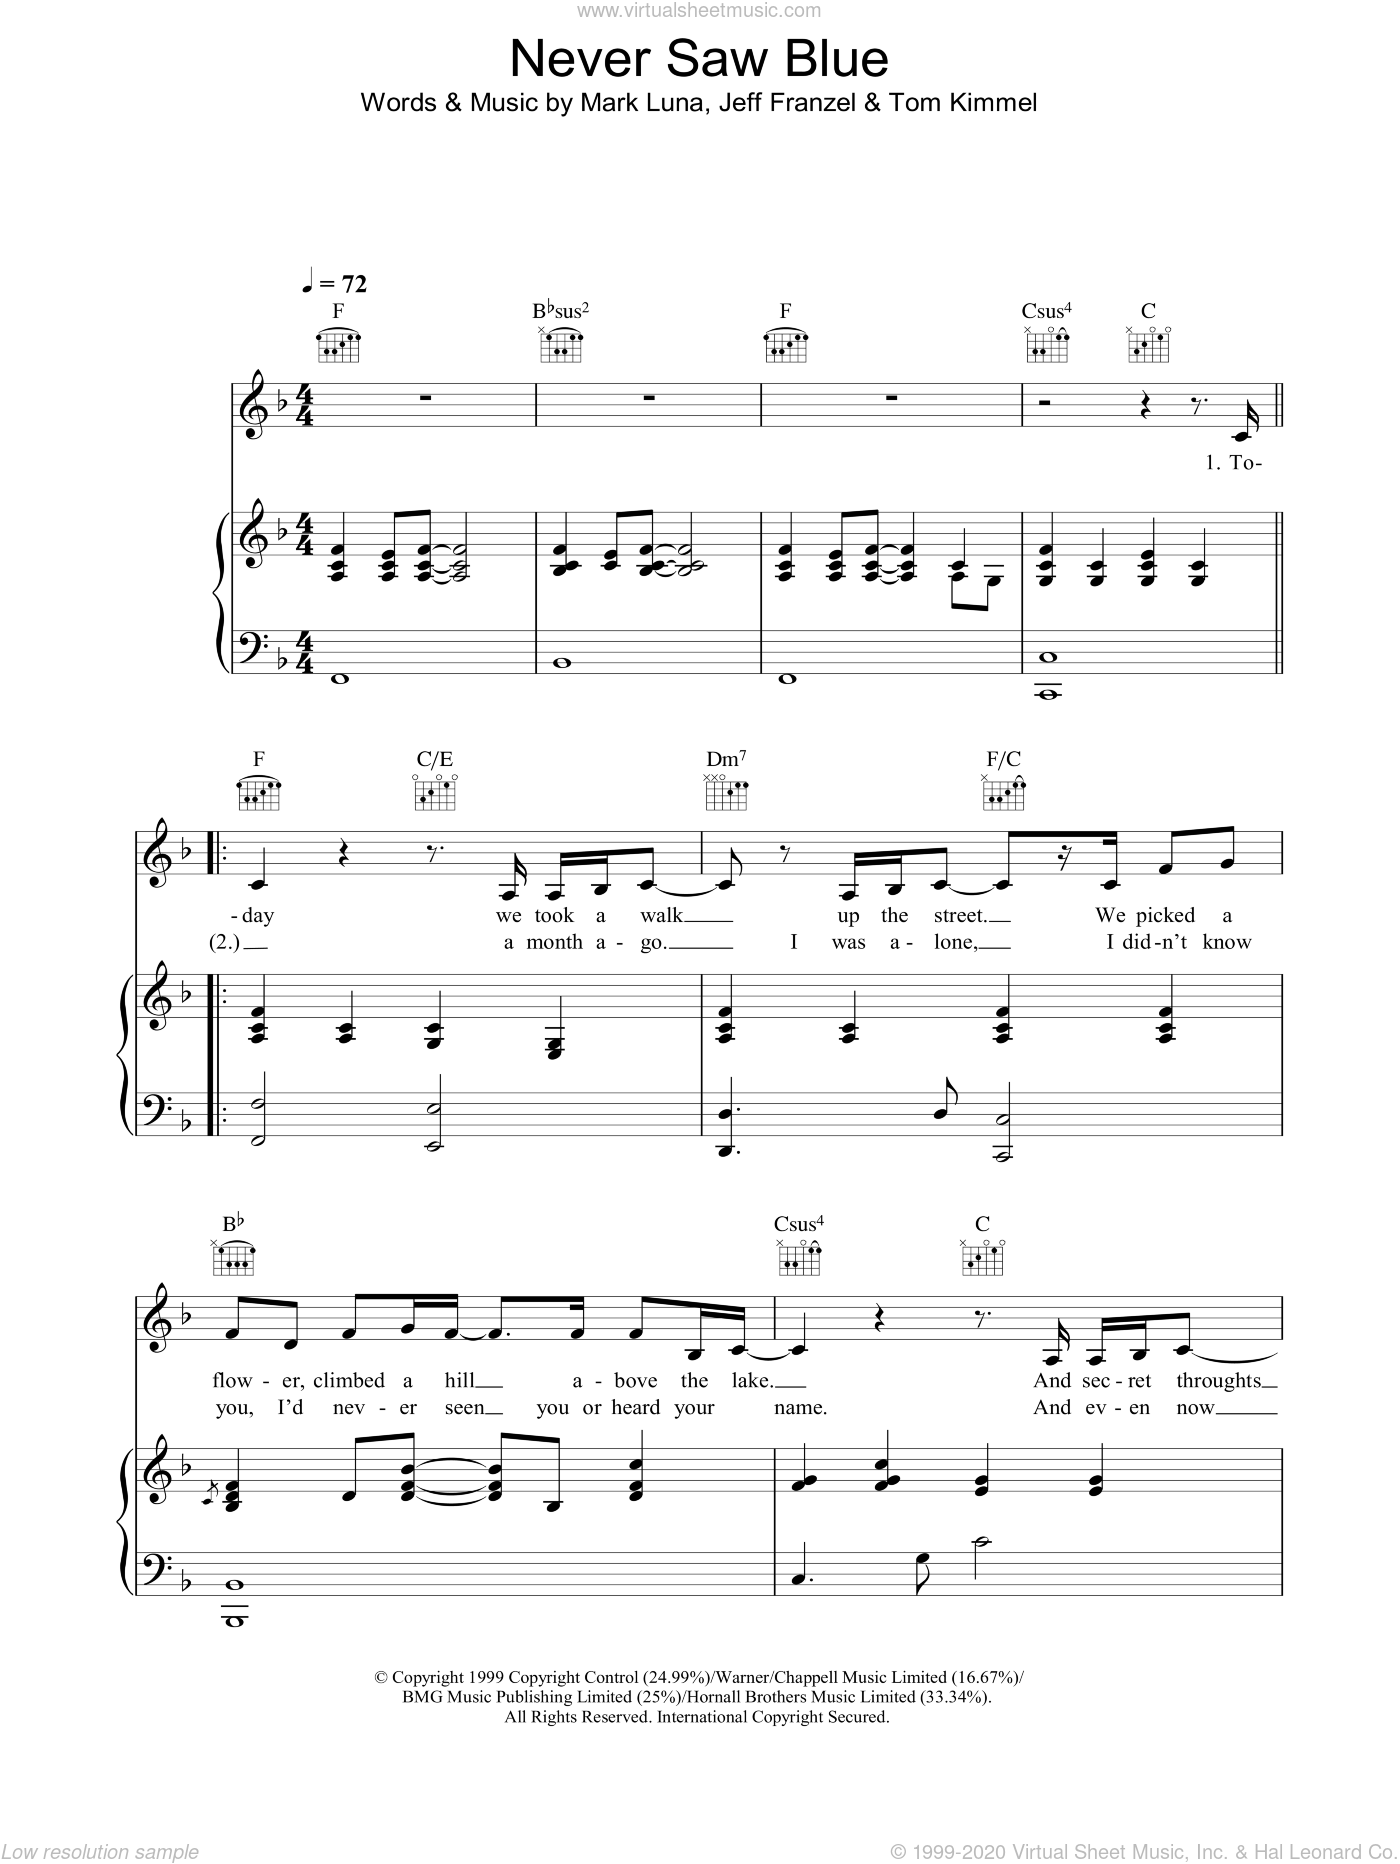 Never Saw Blue sheet music for voice, piano or guitar by Tom Kimmel